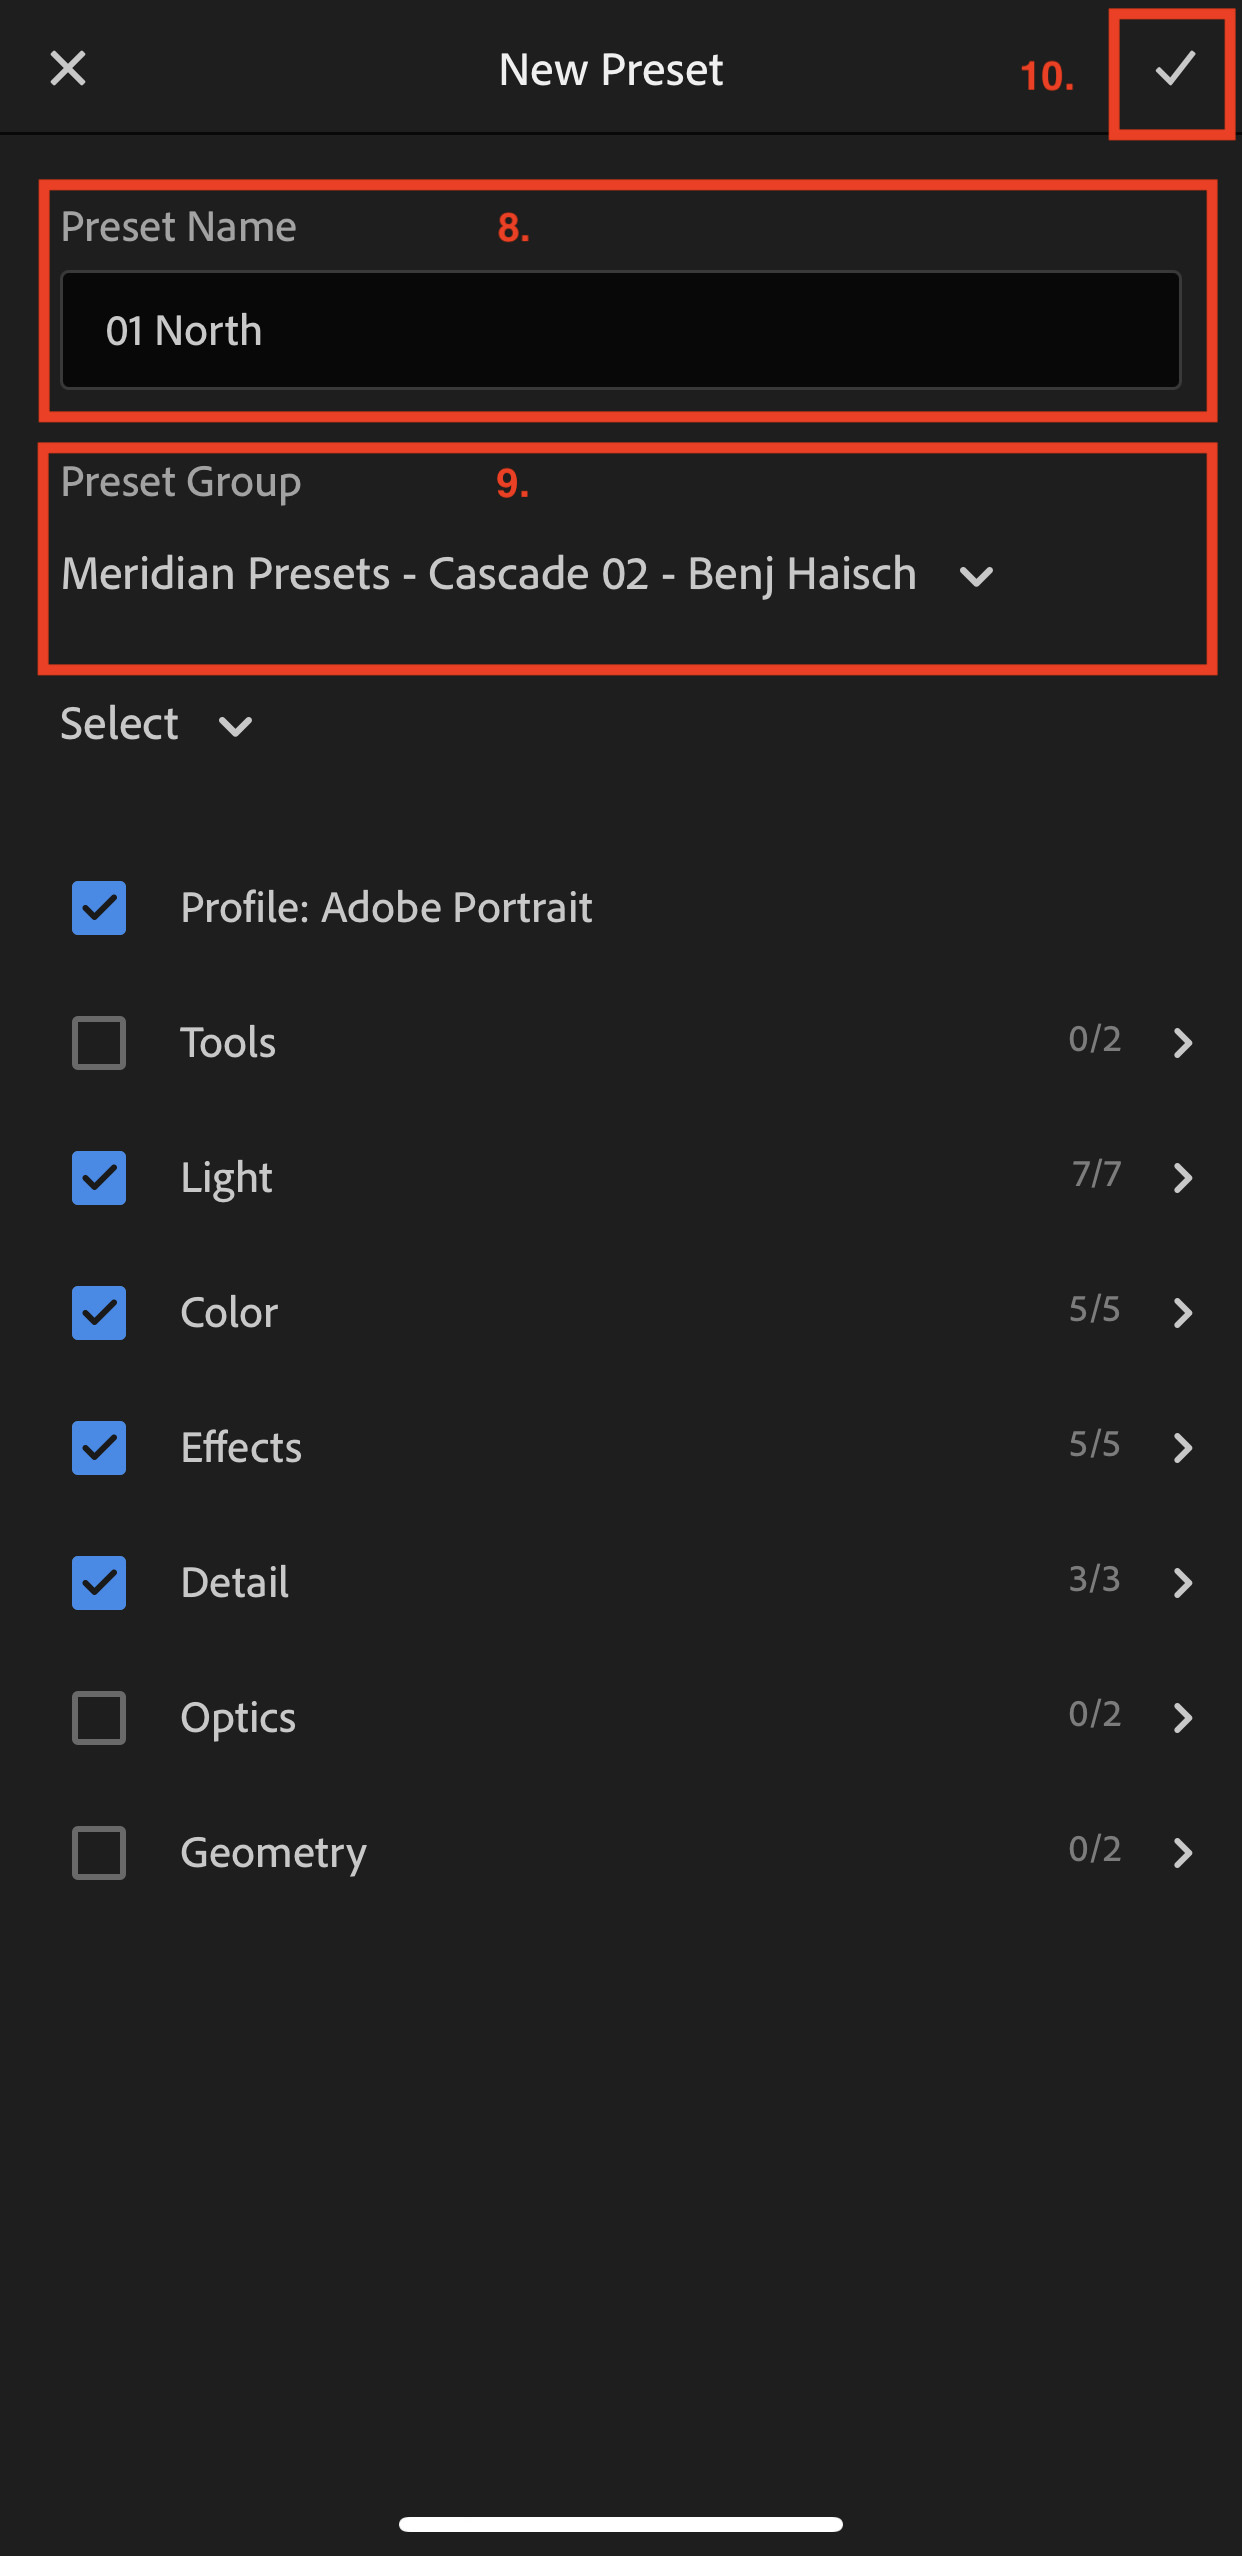 A list of detailed settings of presets in Lightroom Mobile